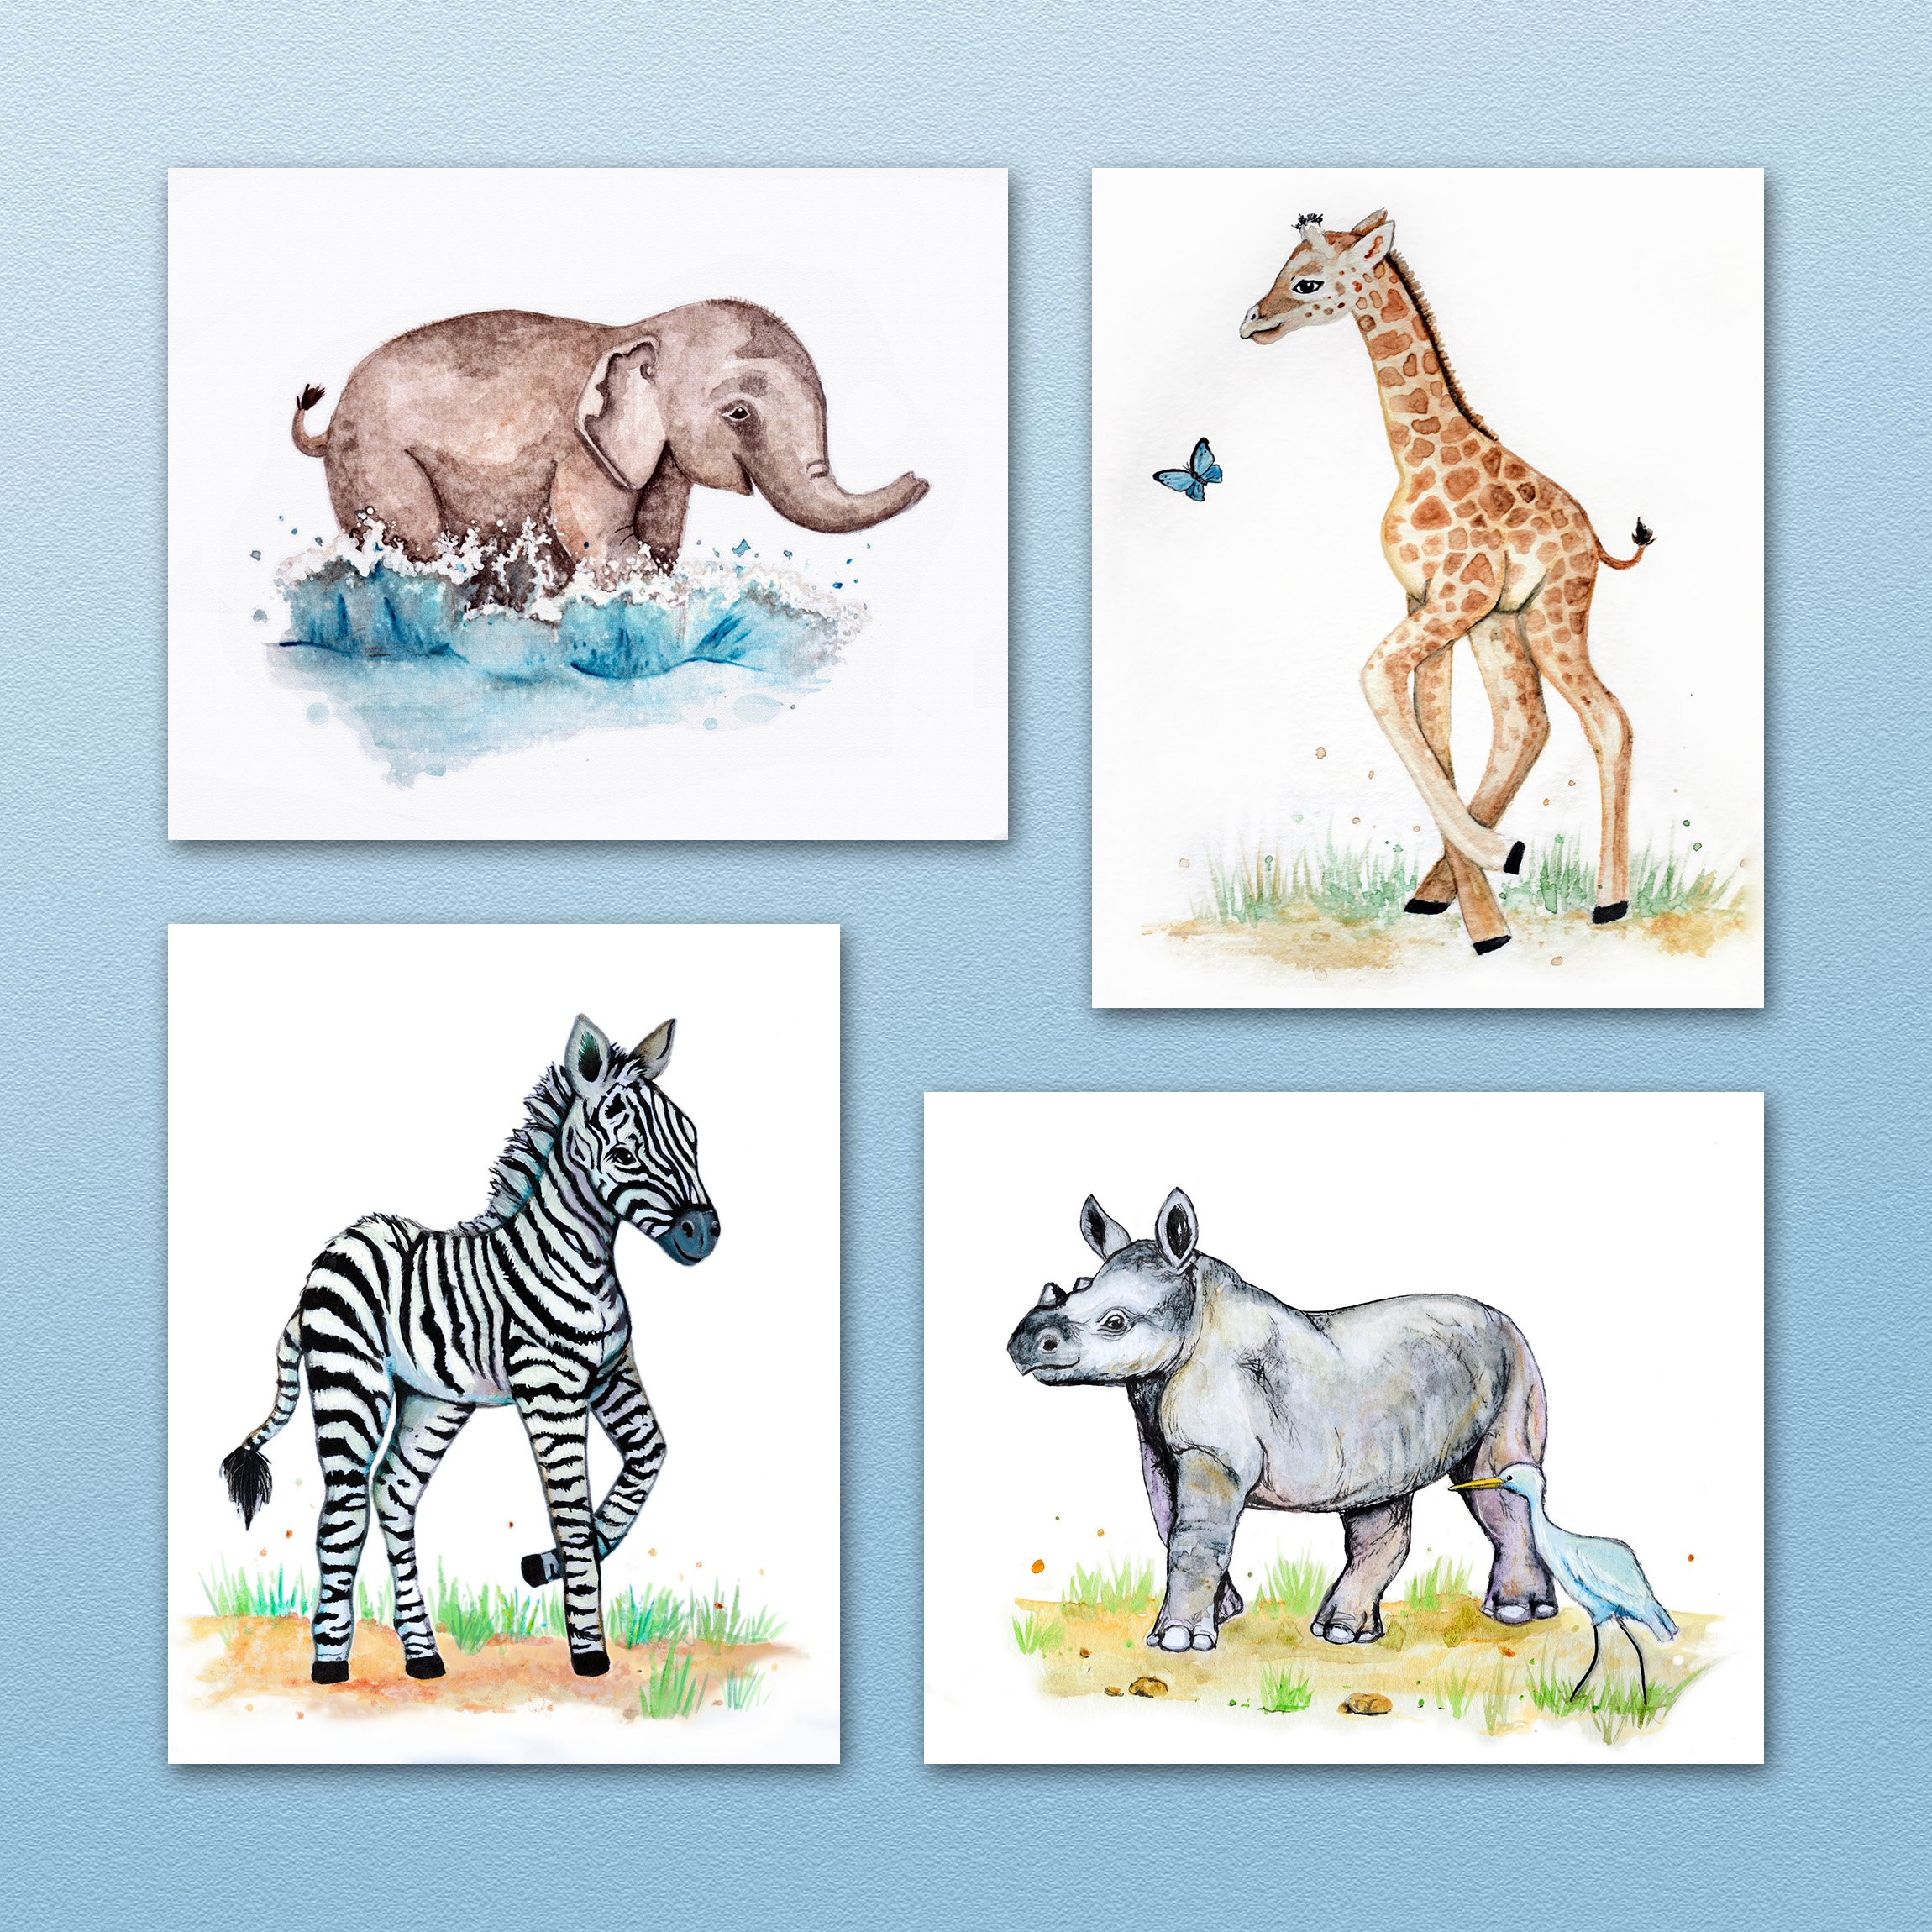 Painted Baby Safari Animals Art Prints. Home/Nursery Decor (8''x10'', (4) Set of Four) by Little Pig Studios (Image #1)